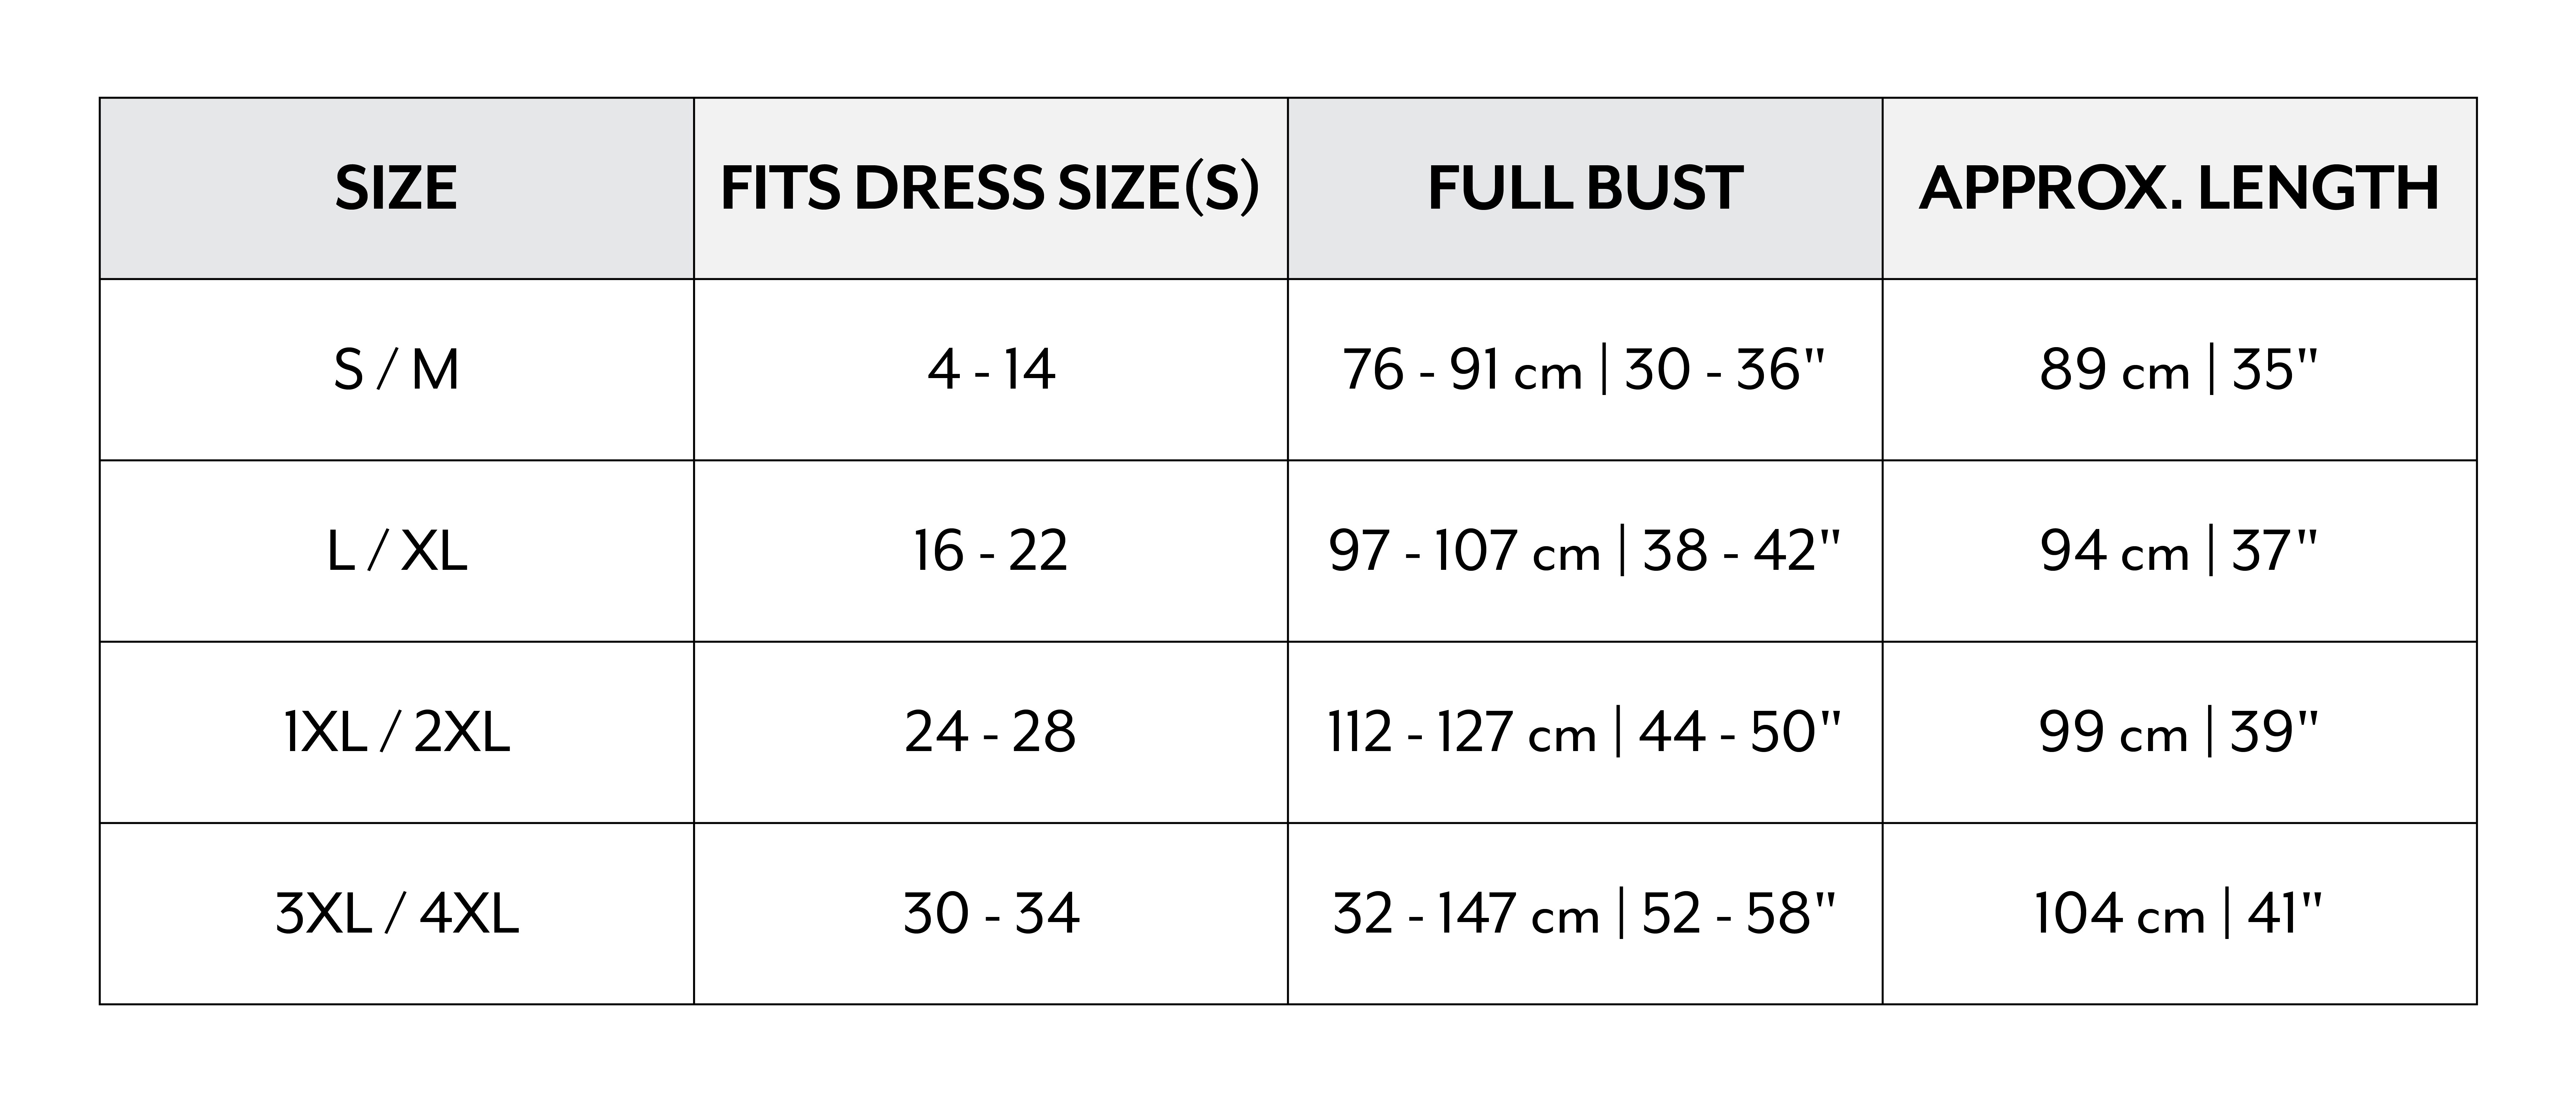 UK Sizing Chart